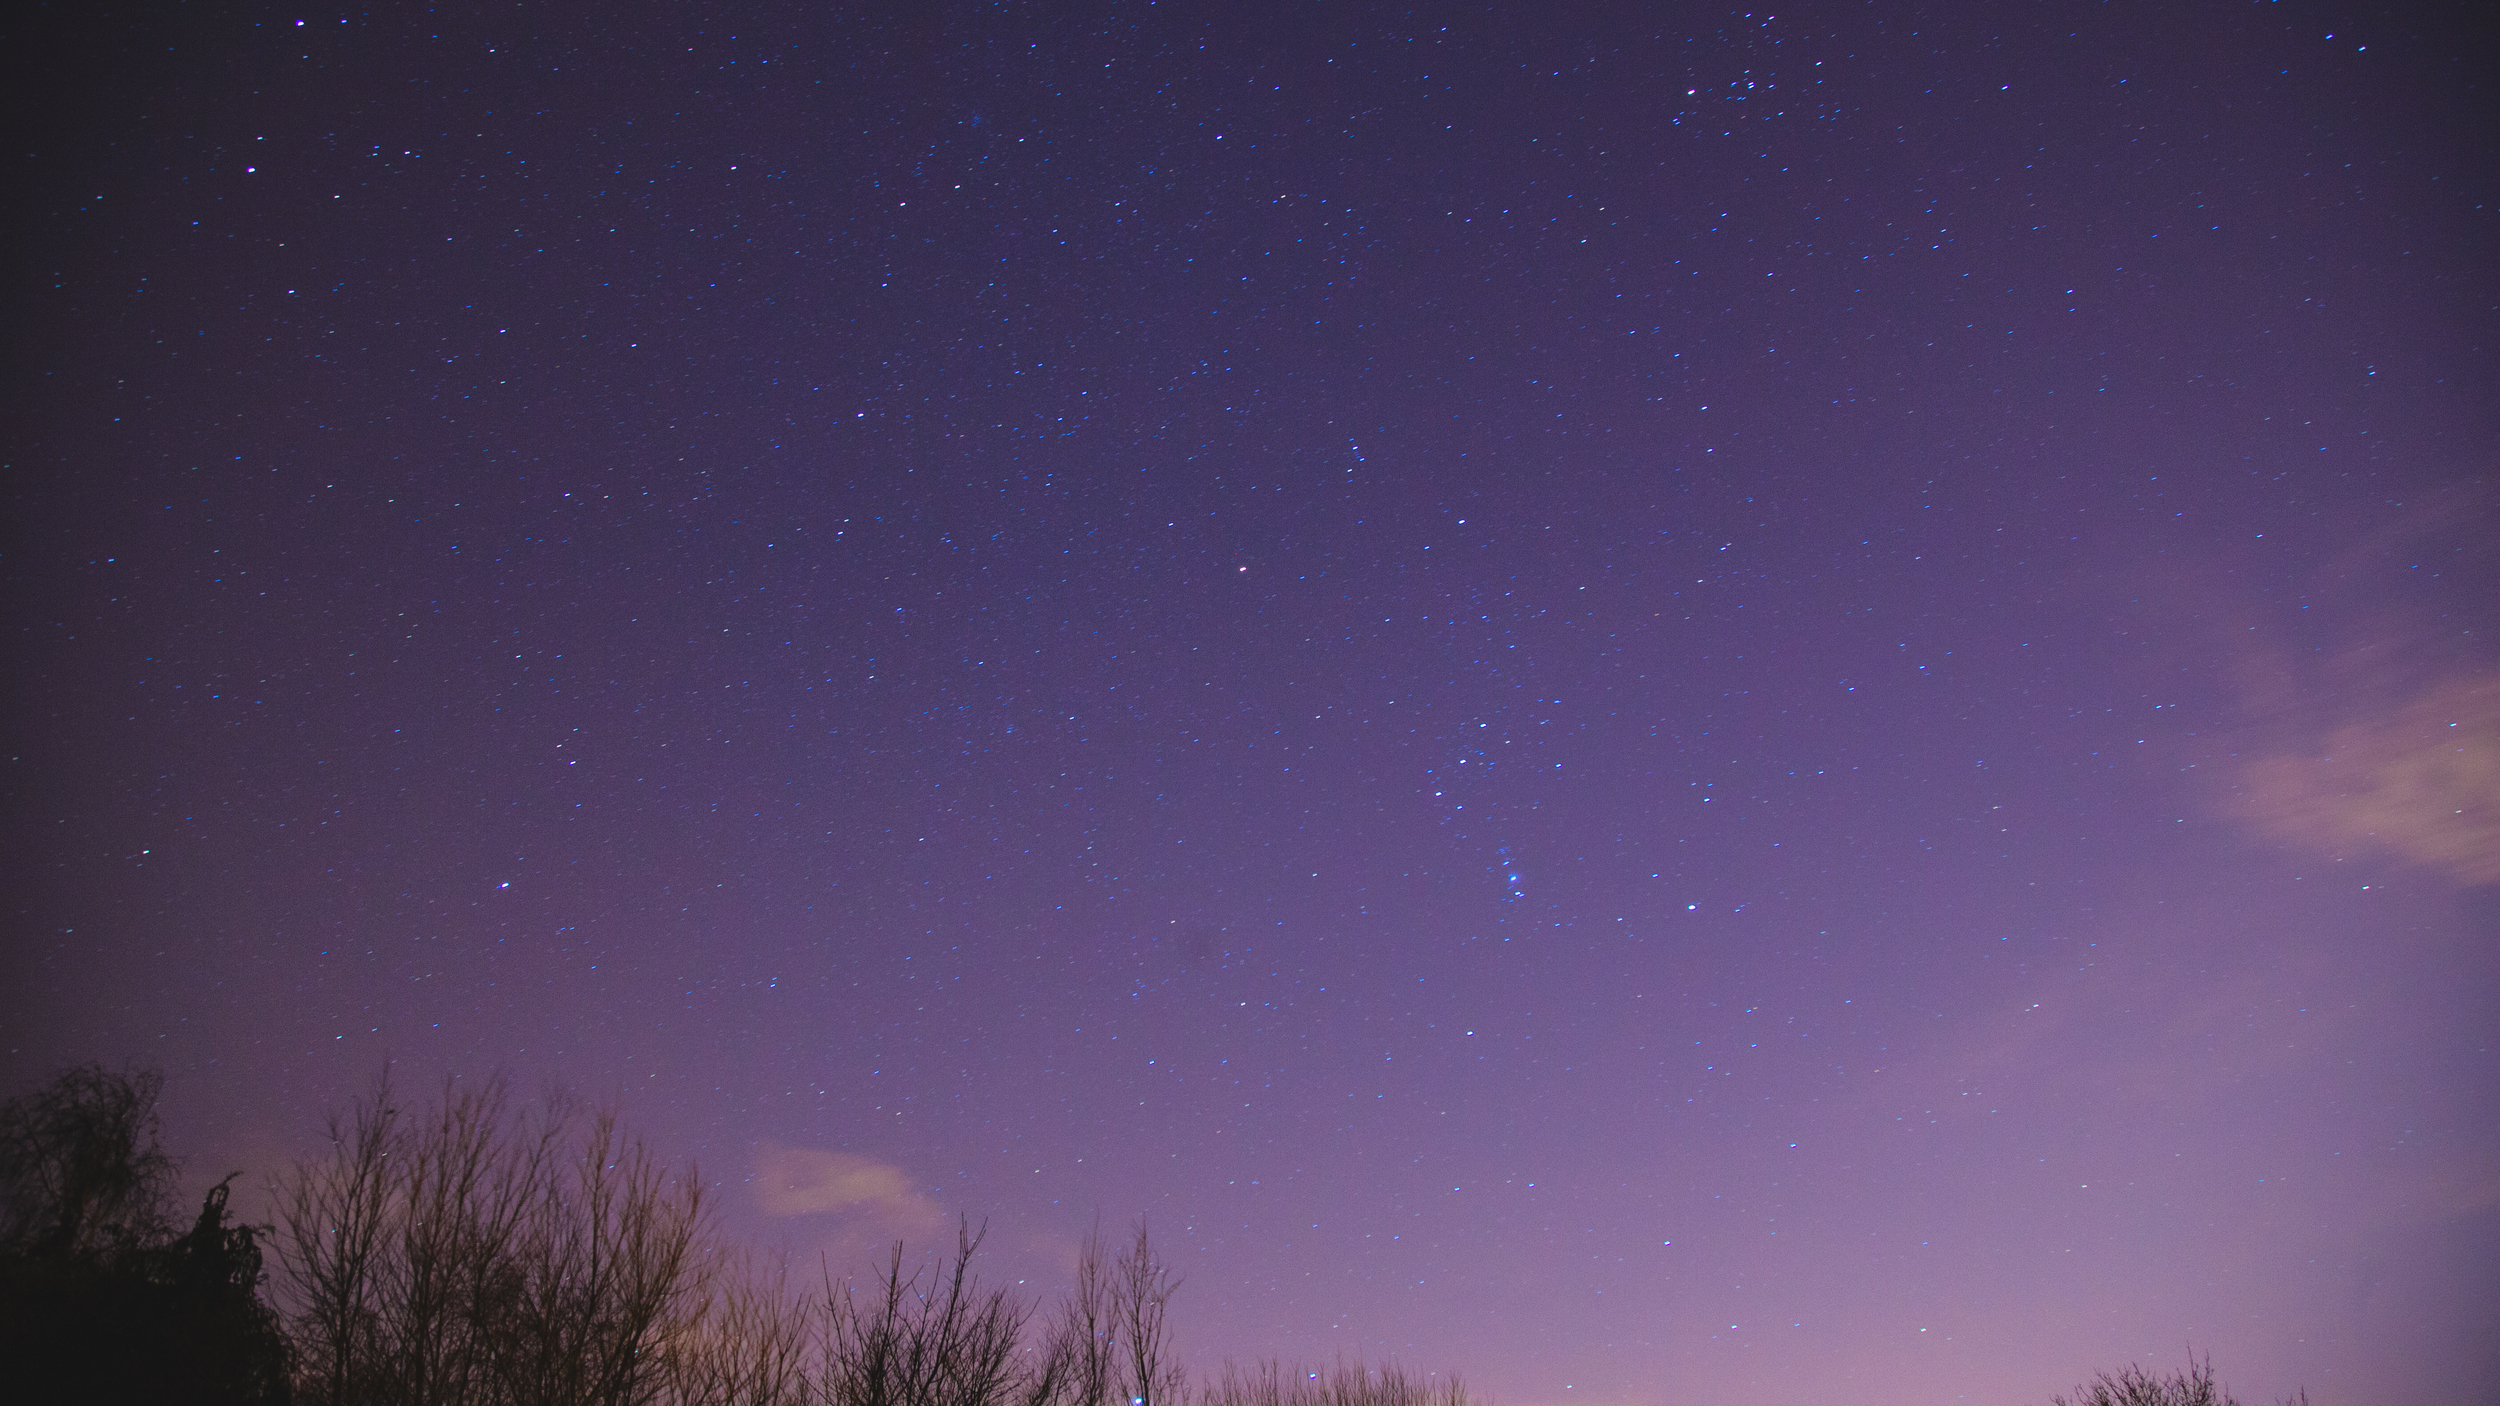 One of my first attempts, testing exposure length and ISO. Shot at F4, ISO 640, 30 Seconds.